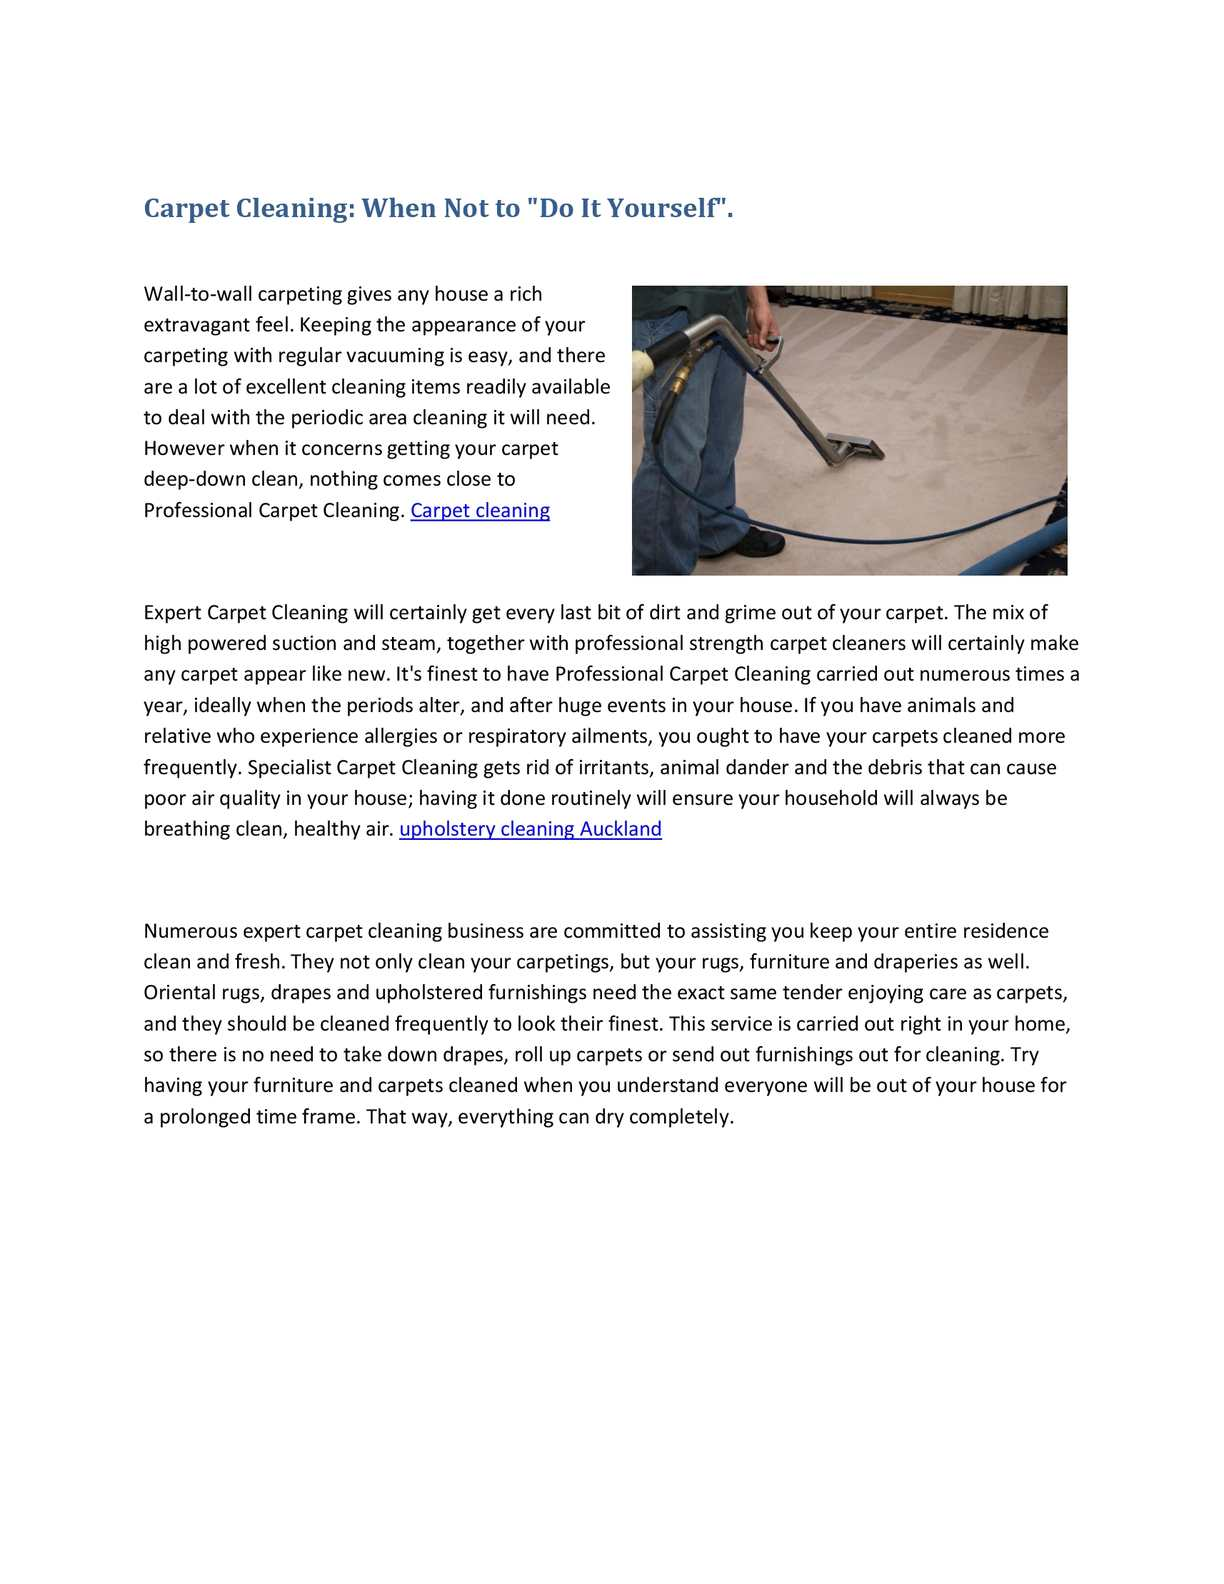 Calamo carpet cleaning when not to do it yourself solutioingenieria Gallery